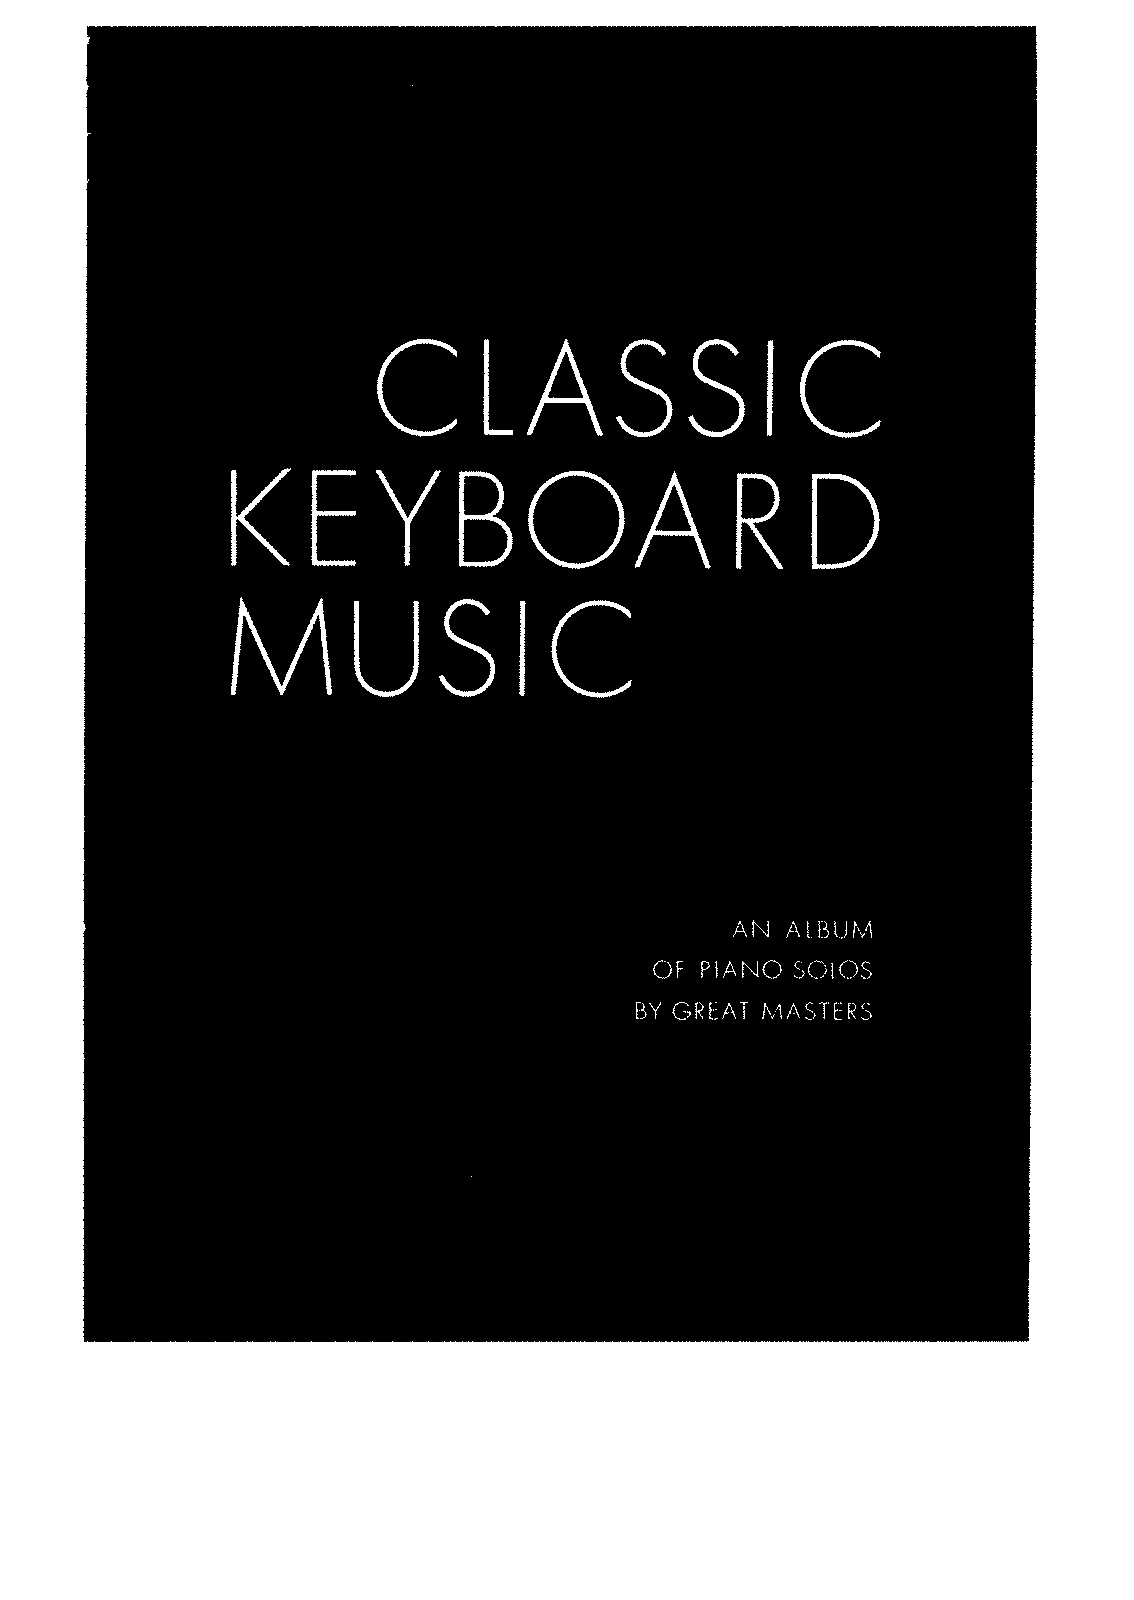 PMLP723756-Classic keyboard music -an album of piano solos by great masters.pdf